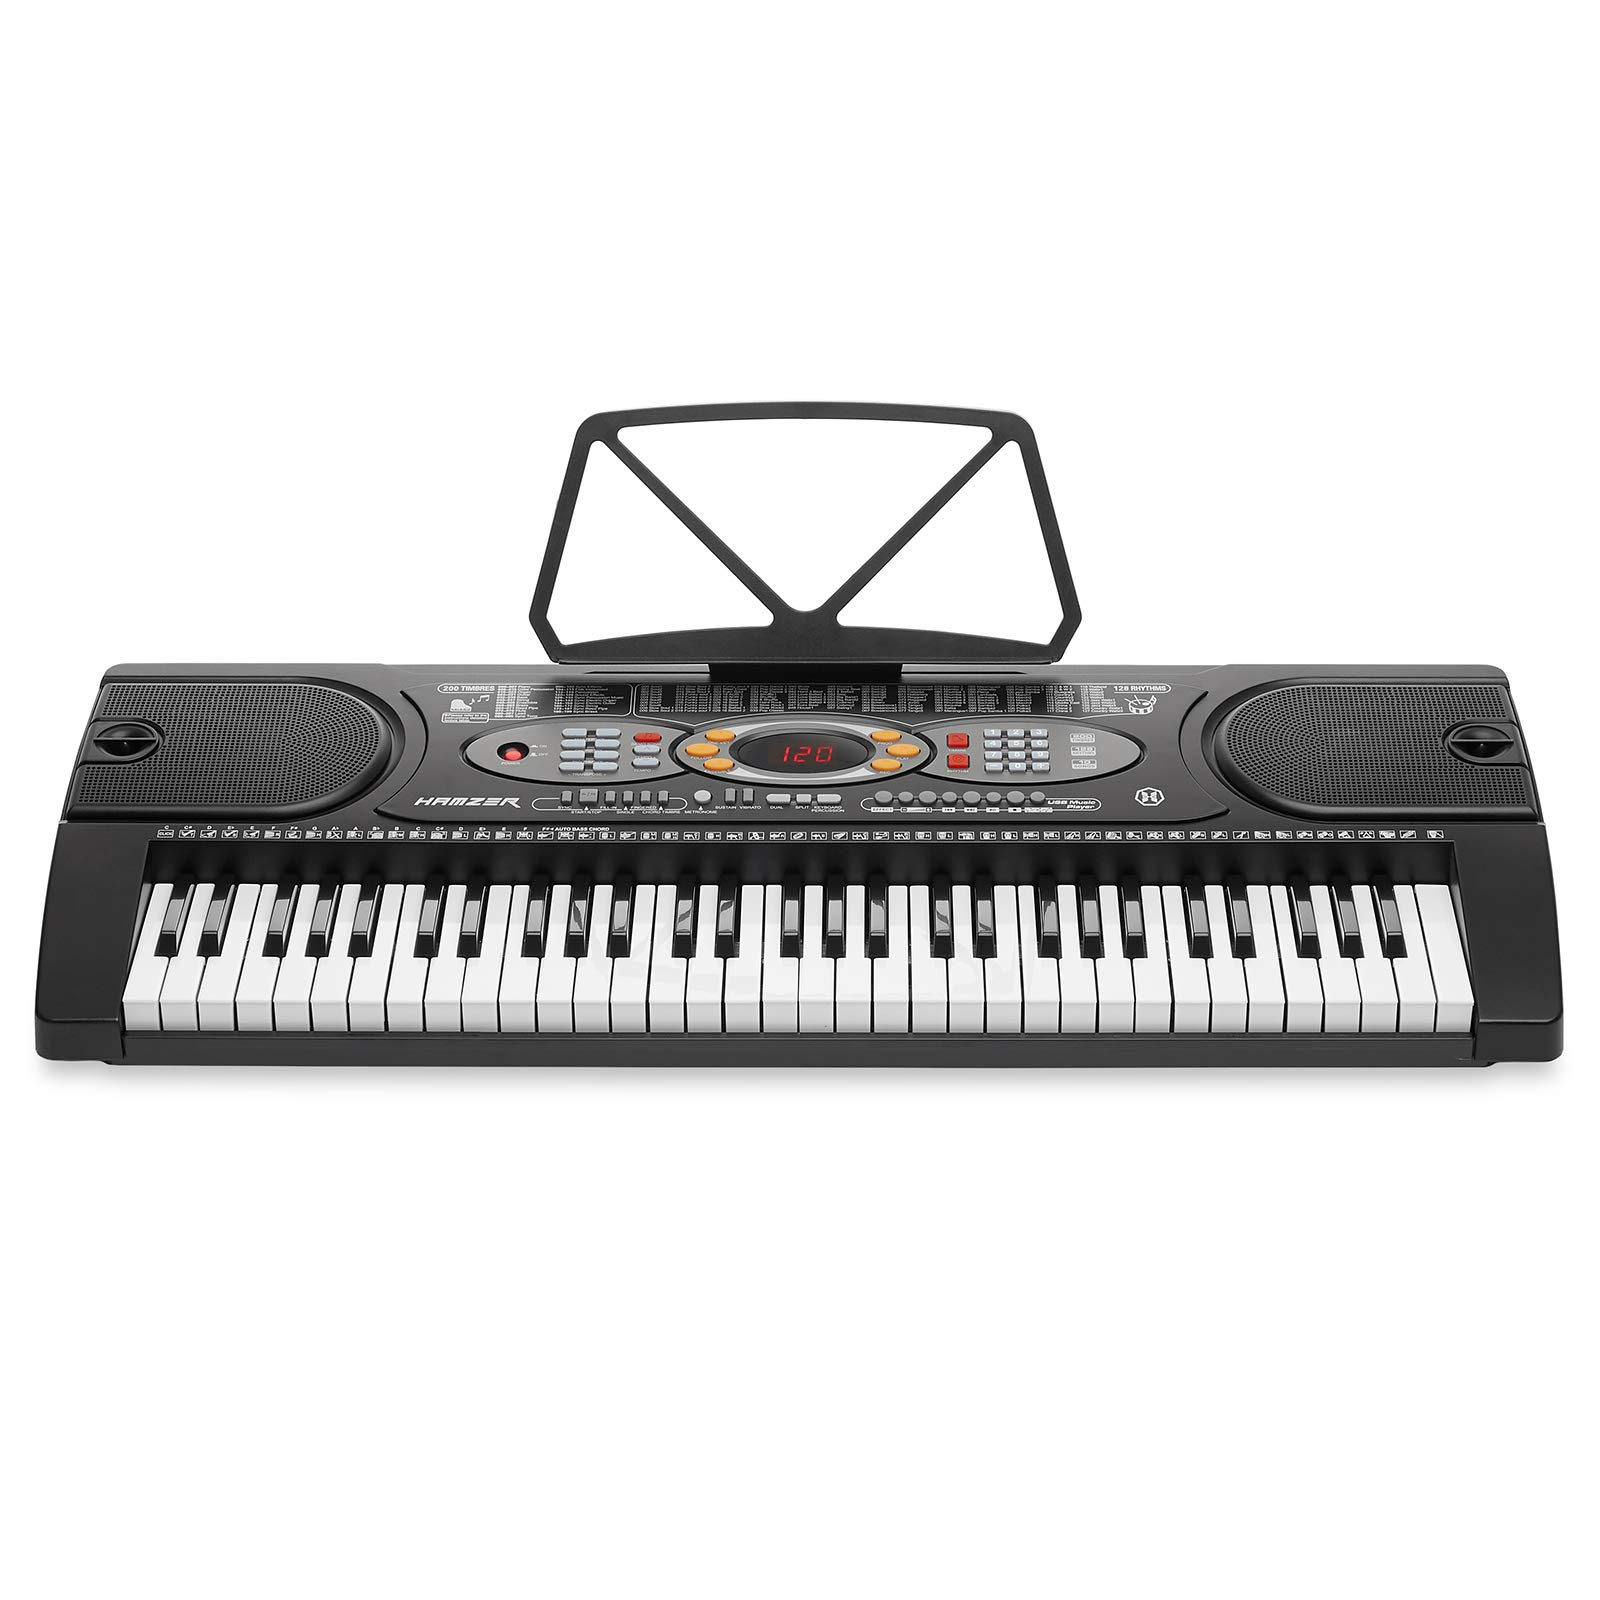 Hamzer 61-Key Electronic Keyboard Portable Digital Music Piano with H Stand, Stool, Headphones Microphone, Sticker Set by Hamzer (Image #2)